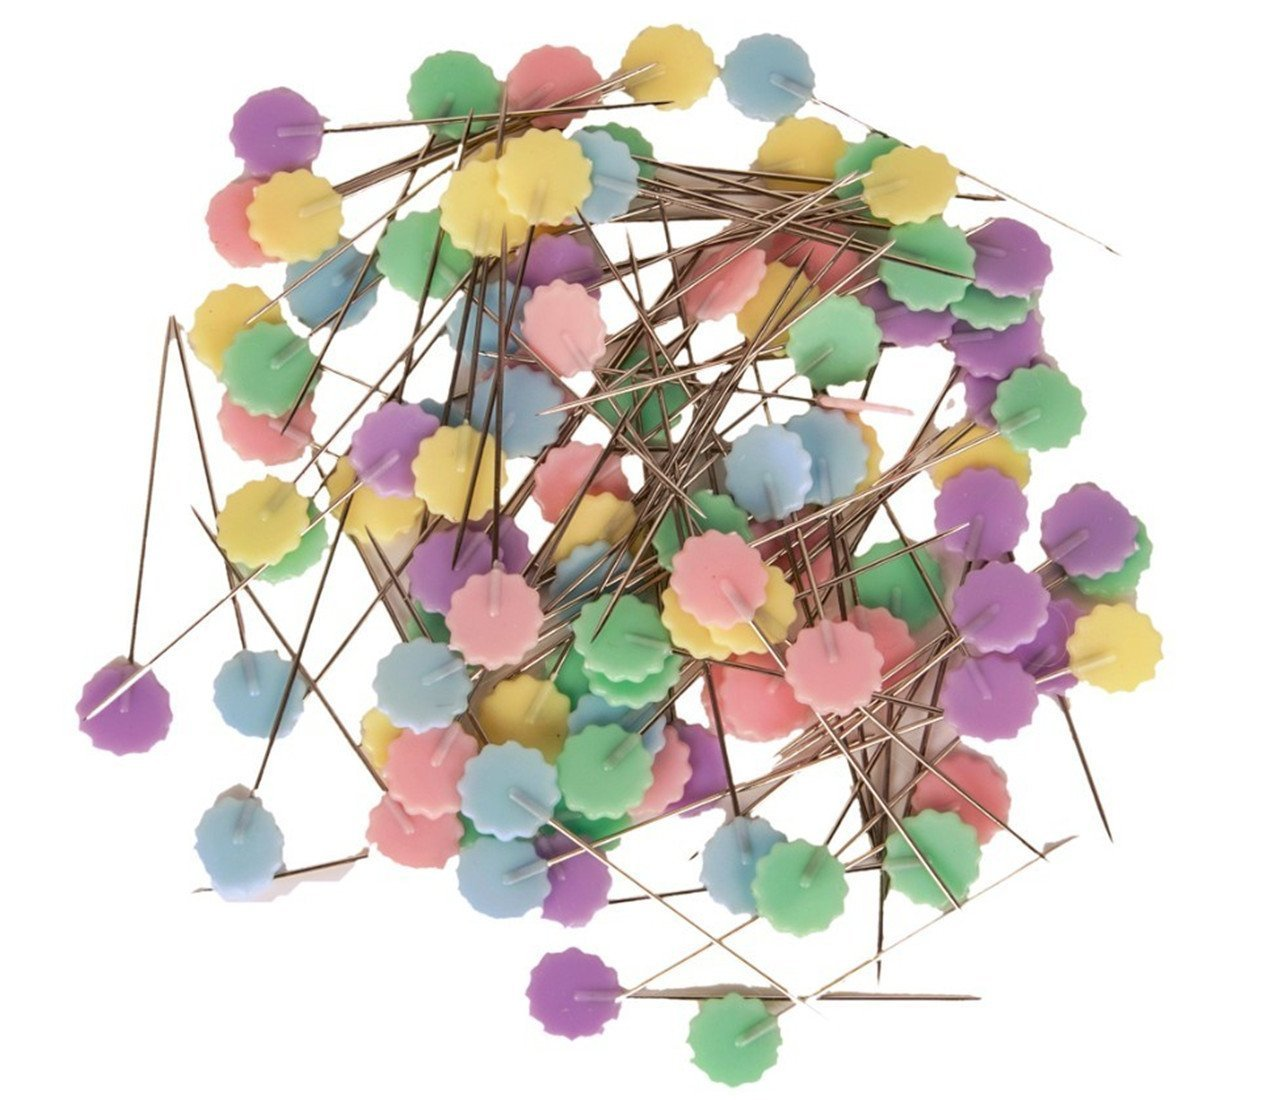 TECH-P Quilting Quilter's 1.9'' Colorful Happy Flower Head Pins Boxed (2x100 Count) TP-HP004